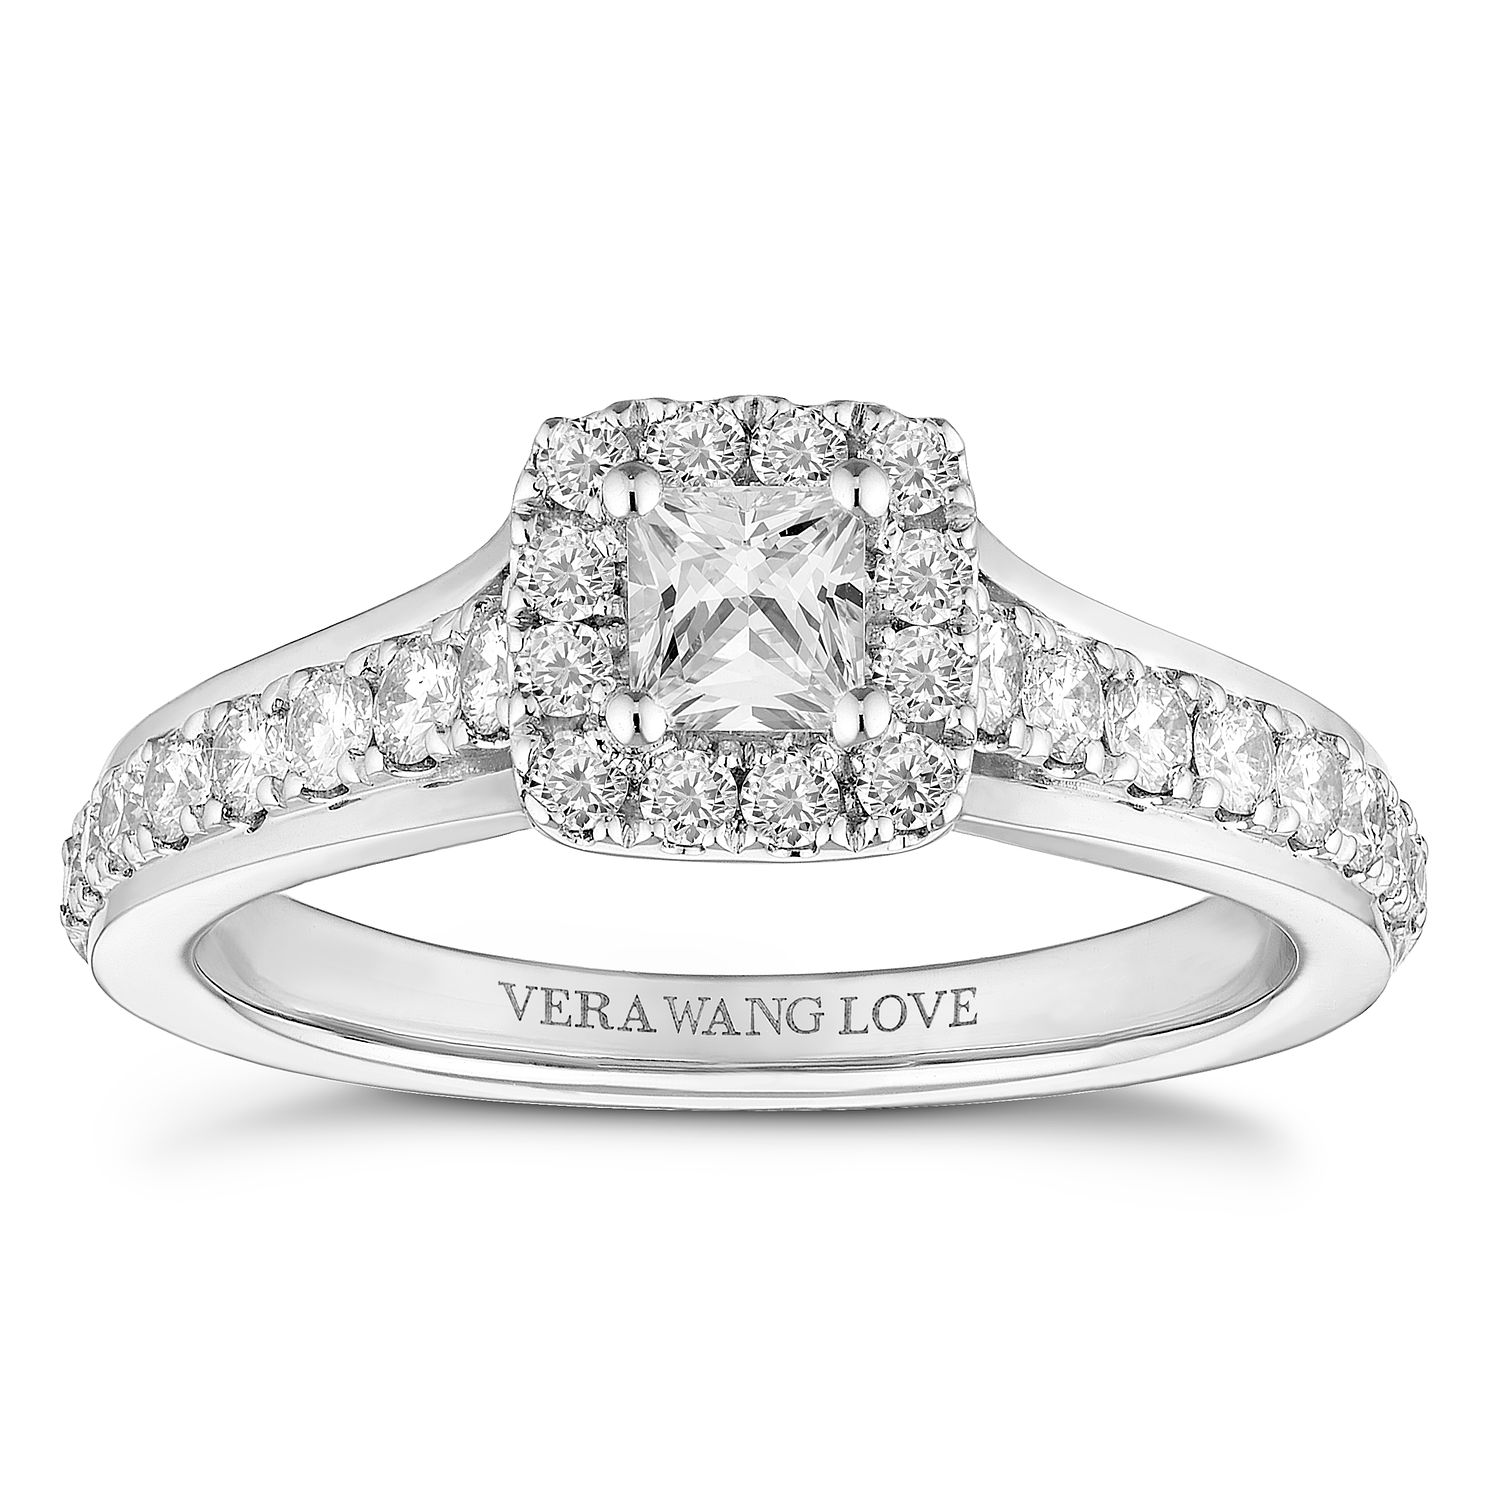 Vera Wang 18ct White Gold 0.69ct Princess Cut Halo Ring - Product number 4645758